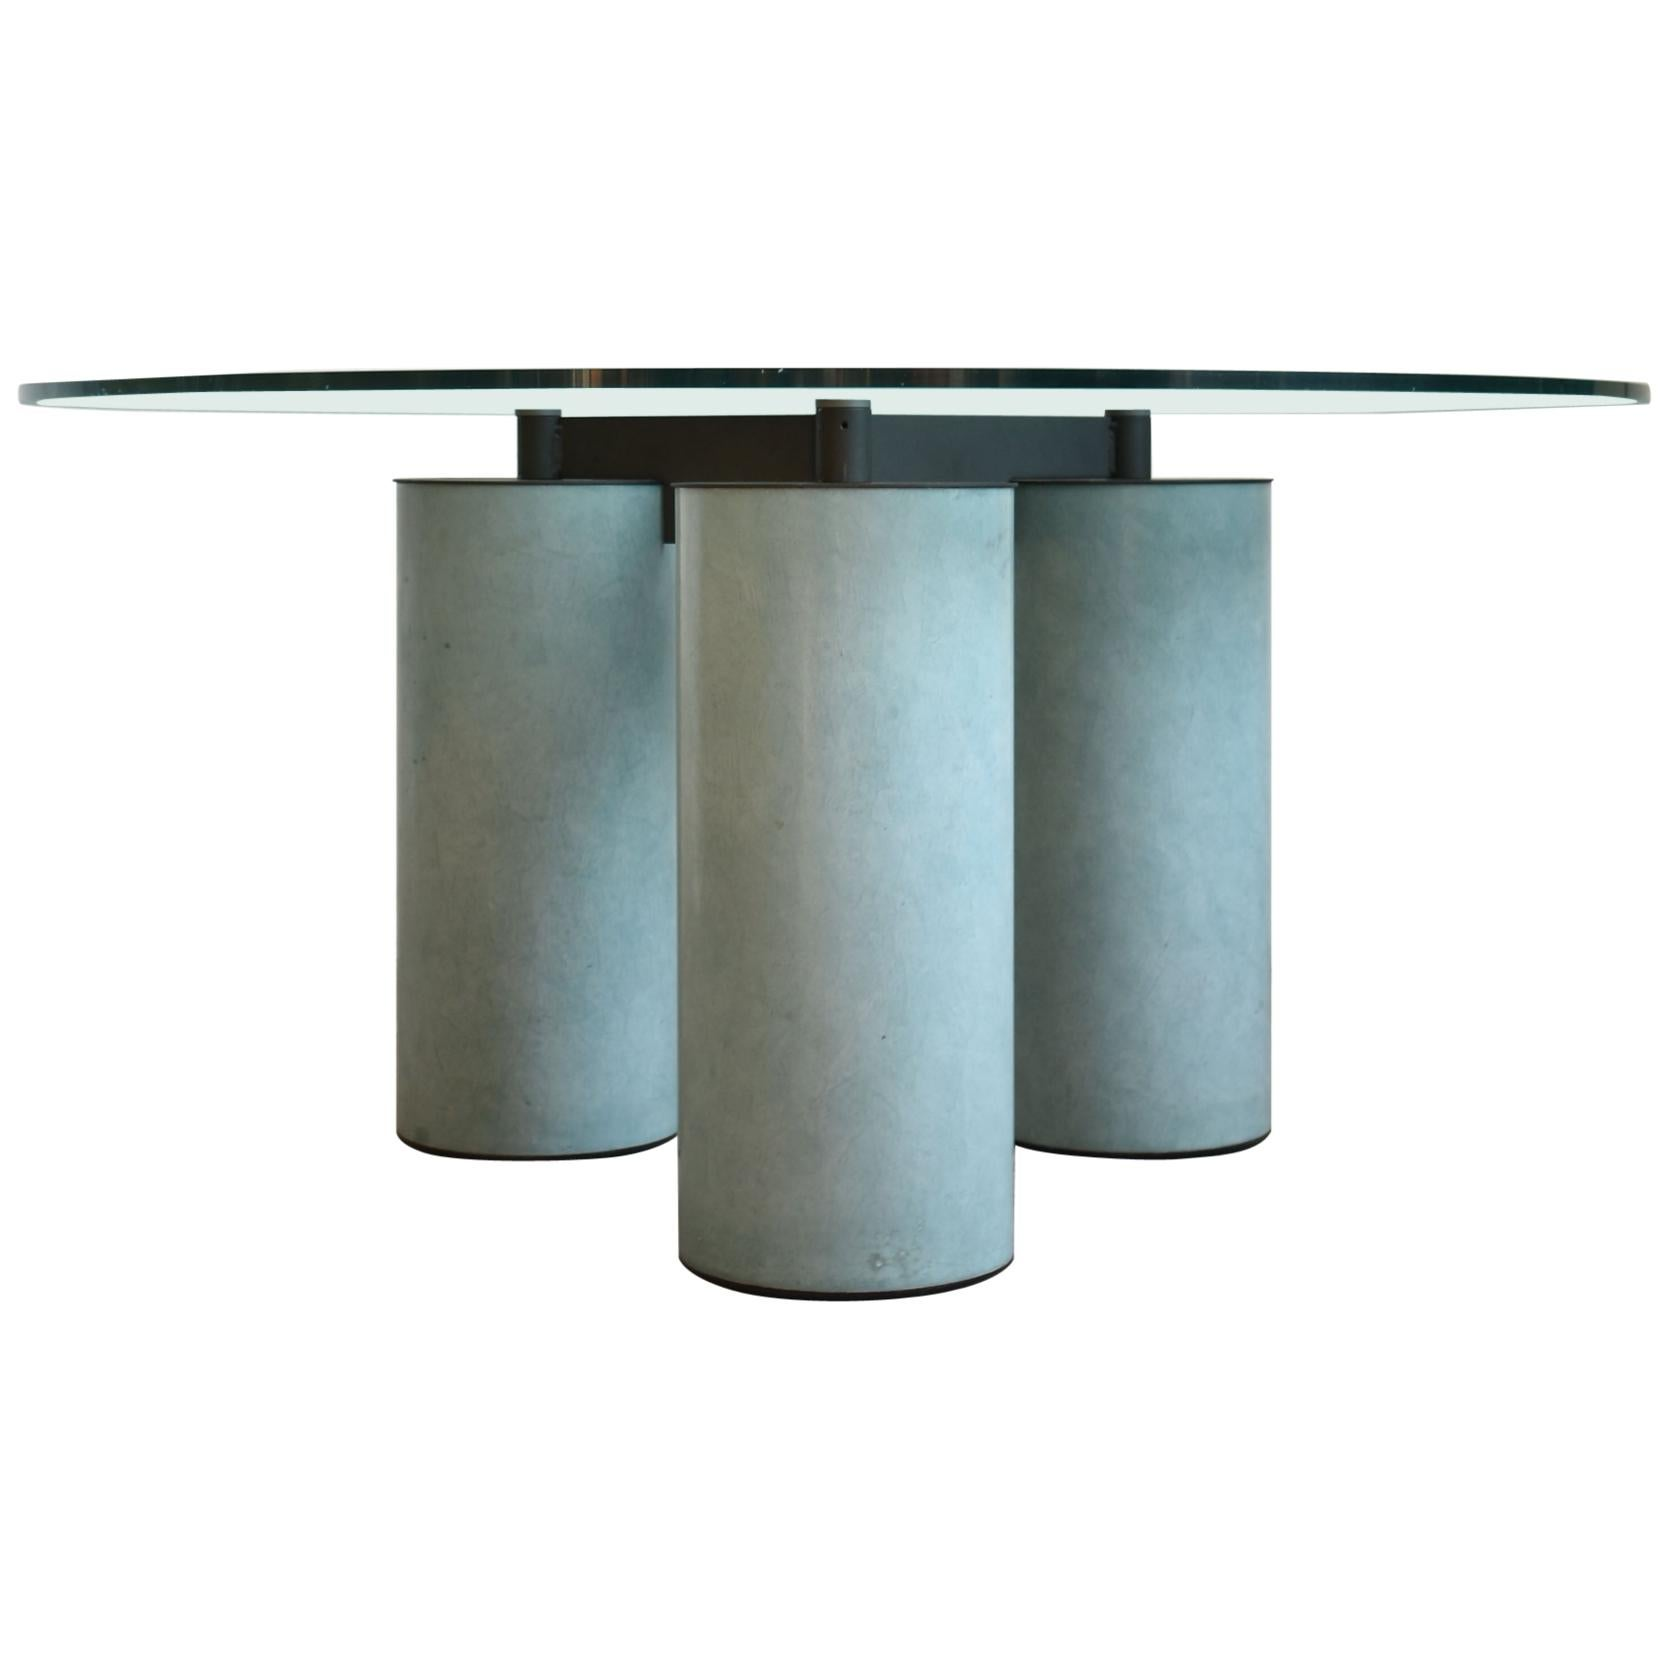 """""""Serenissimo"""" Dining Table by Lella & Massimo Vignelli  for Acerbis, Italy 1980s"""